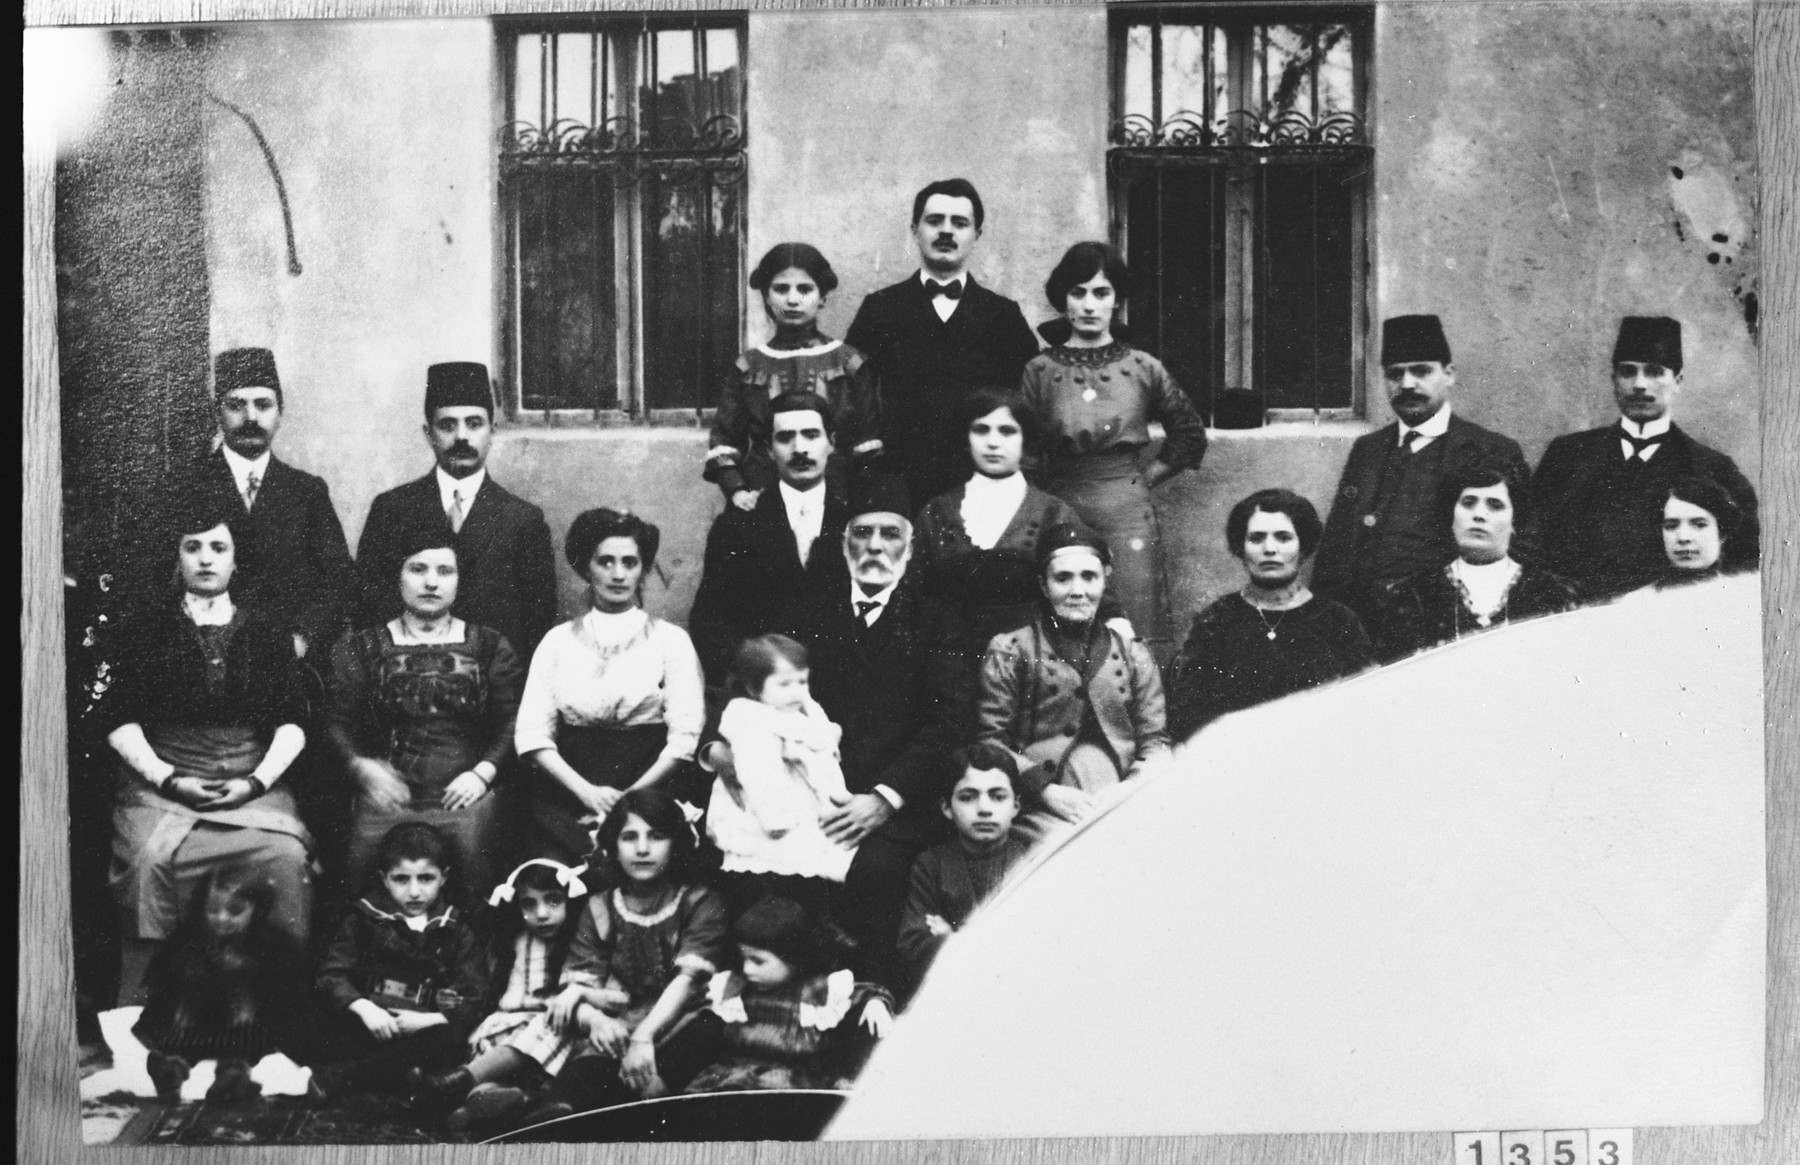 Group portrait of the extended family of Salamon Kolonomos.